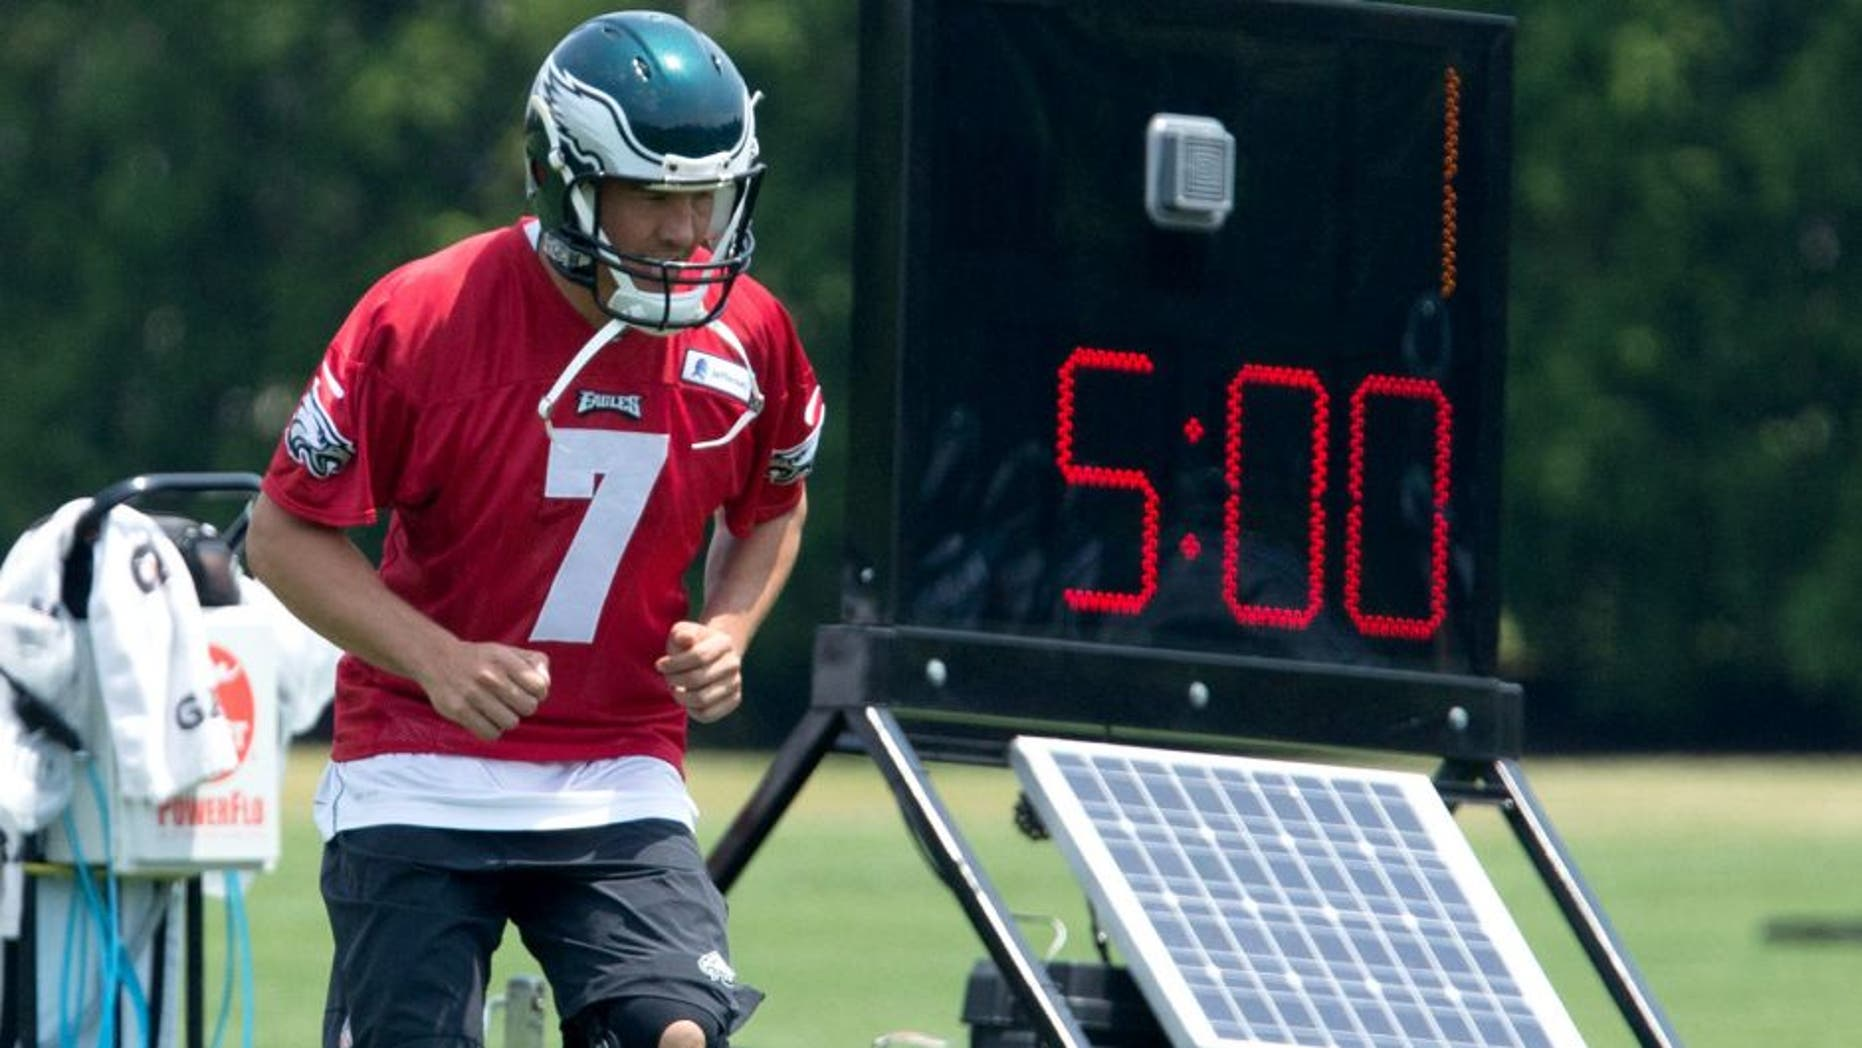 May 28, 2015; Philadelphia, PA, USA; Philadelphia Eagles quarterback Sam Bradford (7) loosens up during OTA's at the NovaCare Complex. Mandatory Credit: Bill Streicher-USA TODAY Sports